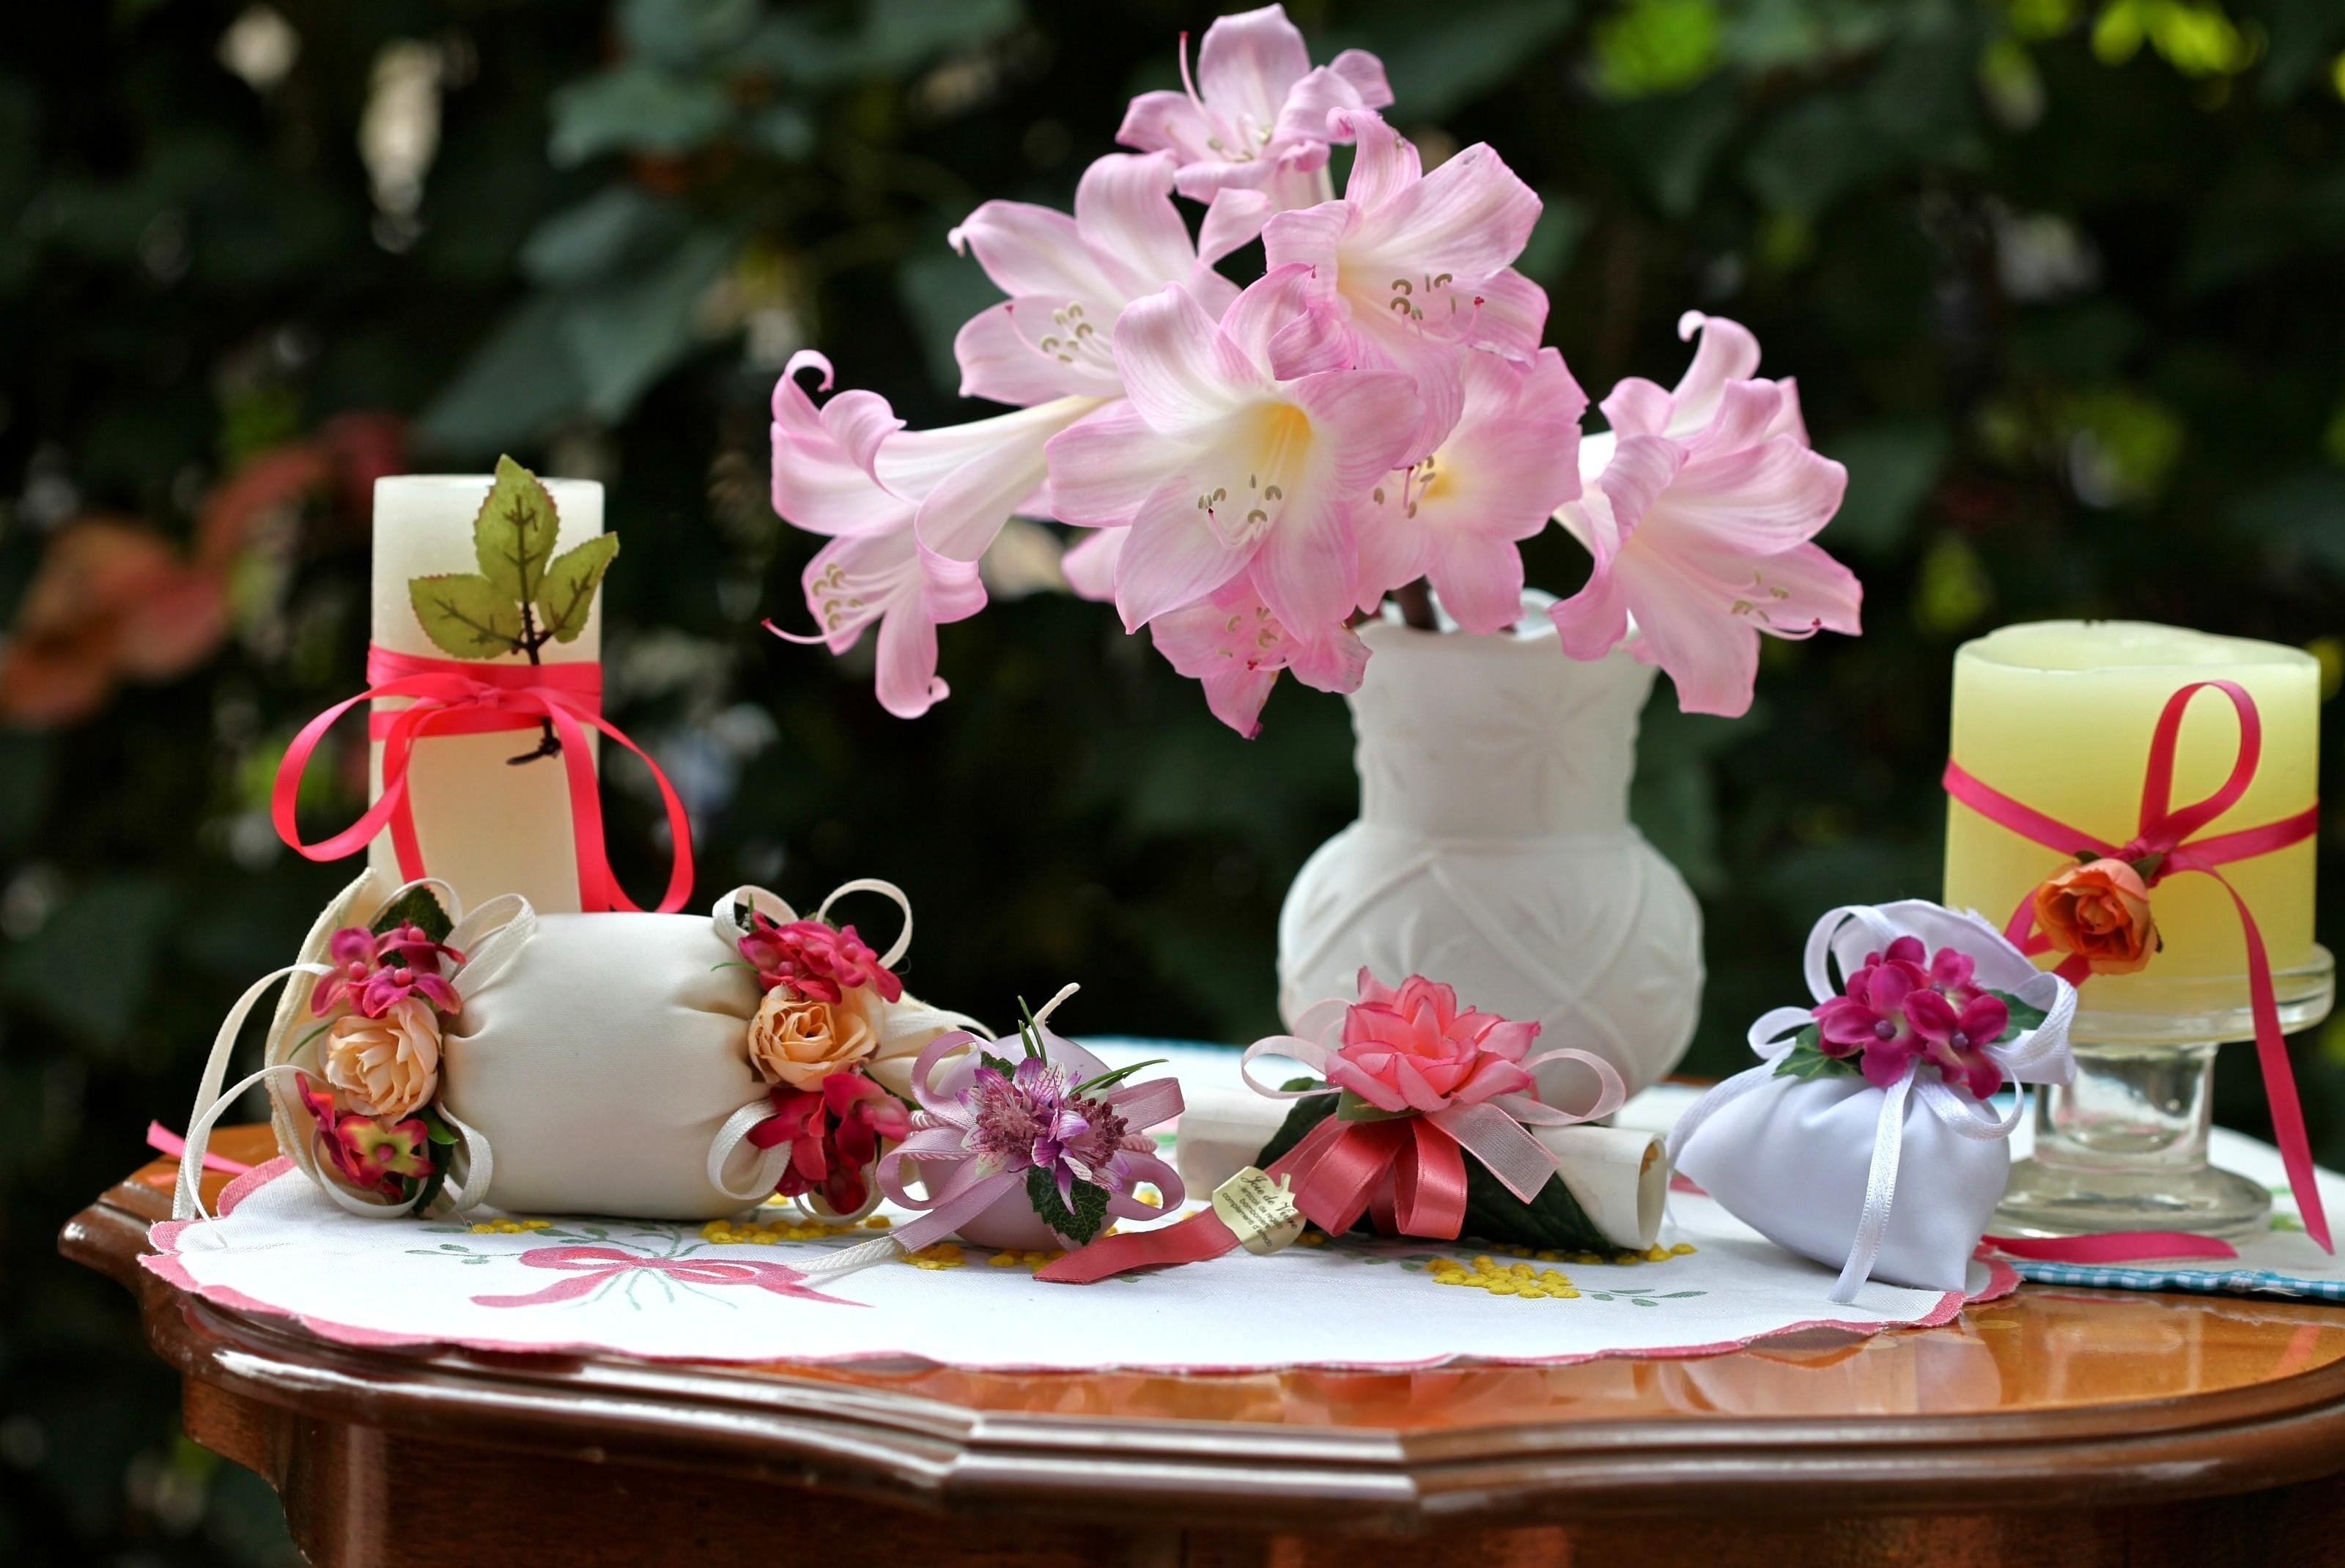 108592 download wallpaper Flowers, Vase, Pouches, Bags, Bows, Candles, Table, Roses screensavers and pictures for free